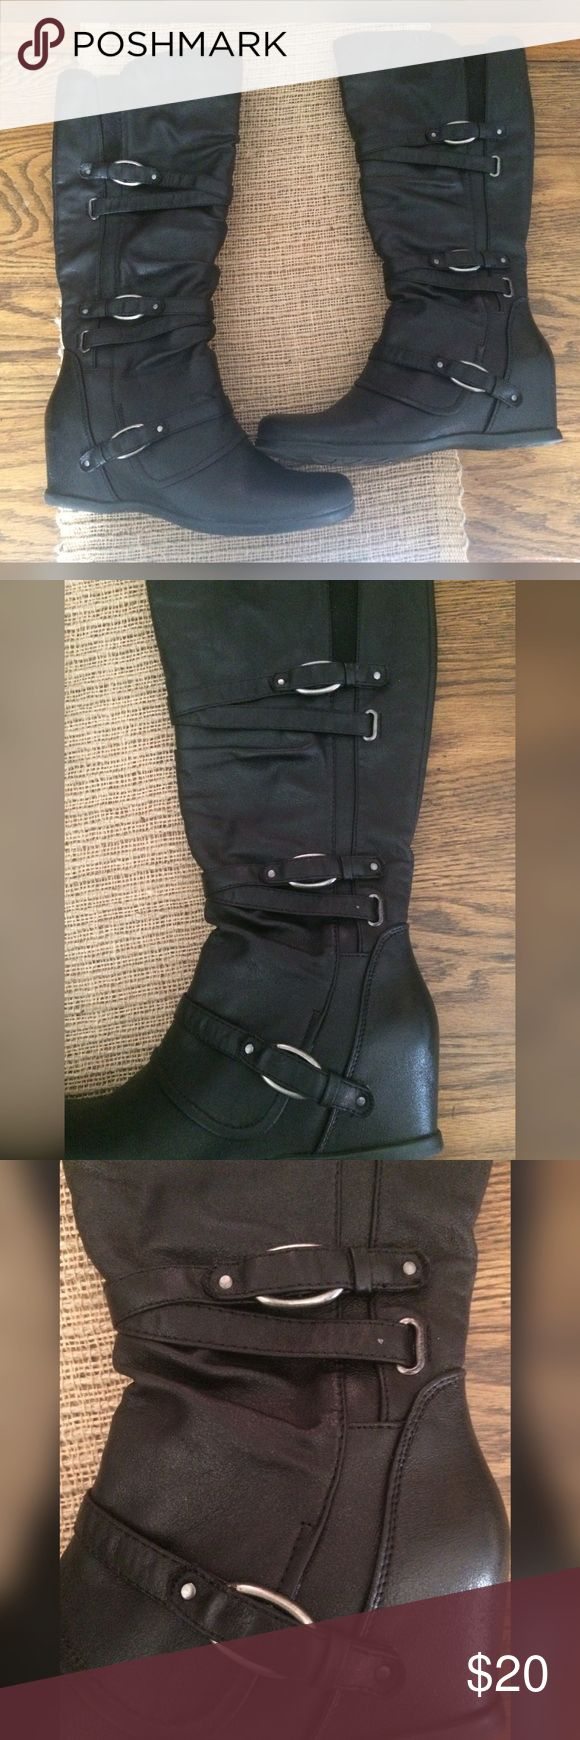 Brown Riding Boots Size 13 Girls